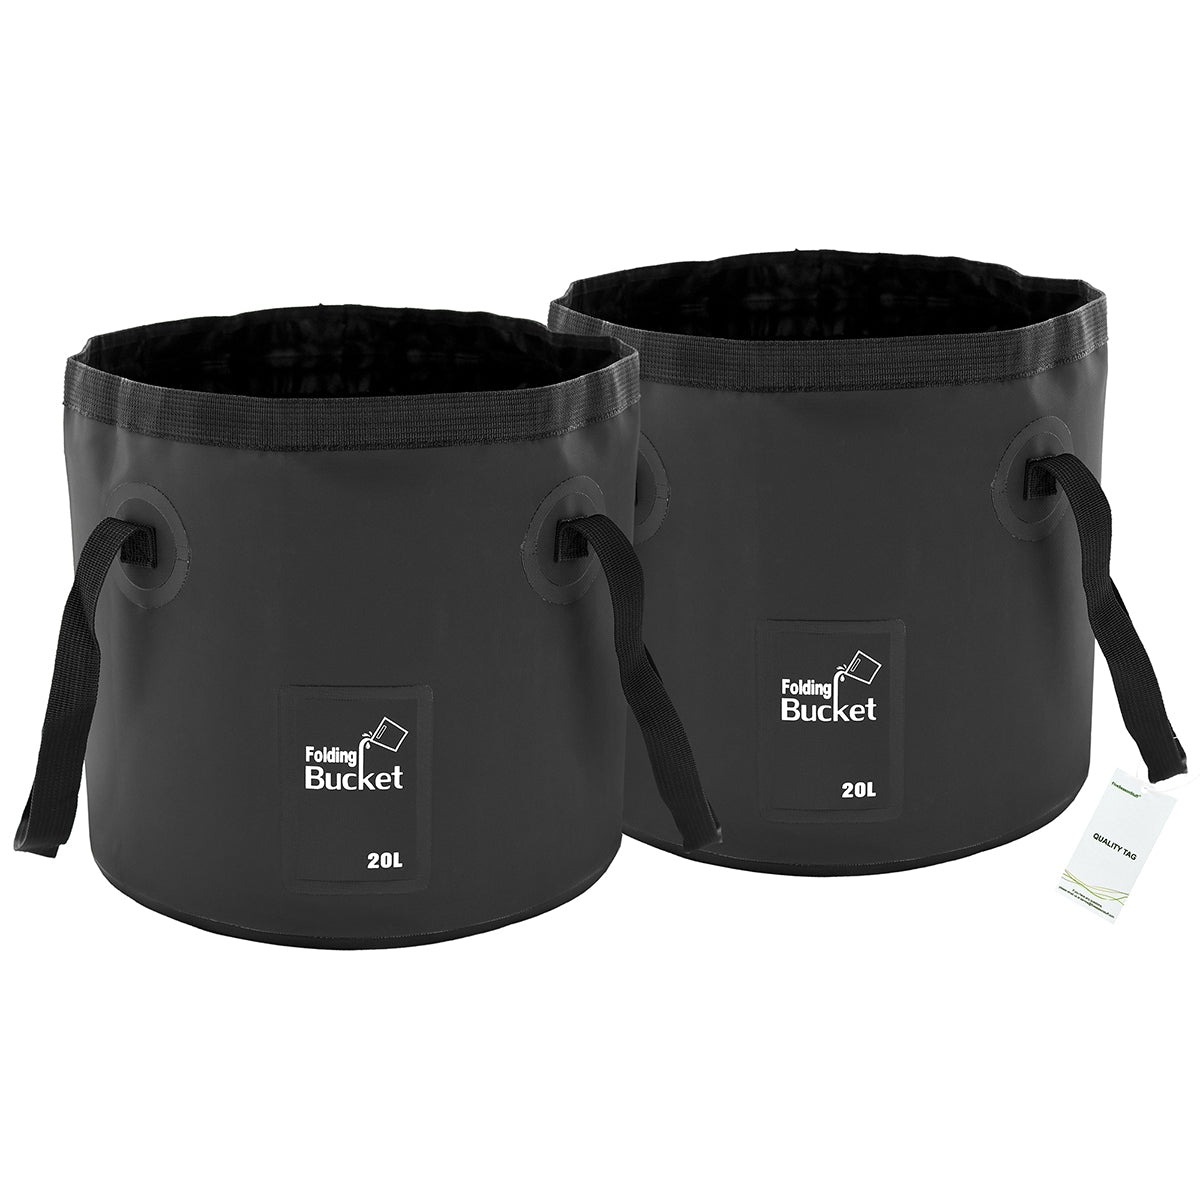 2 Black Collapsible Buckets 20 Liters